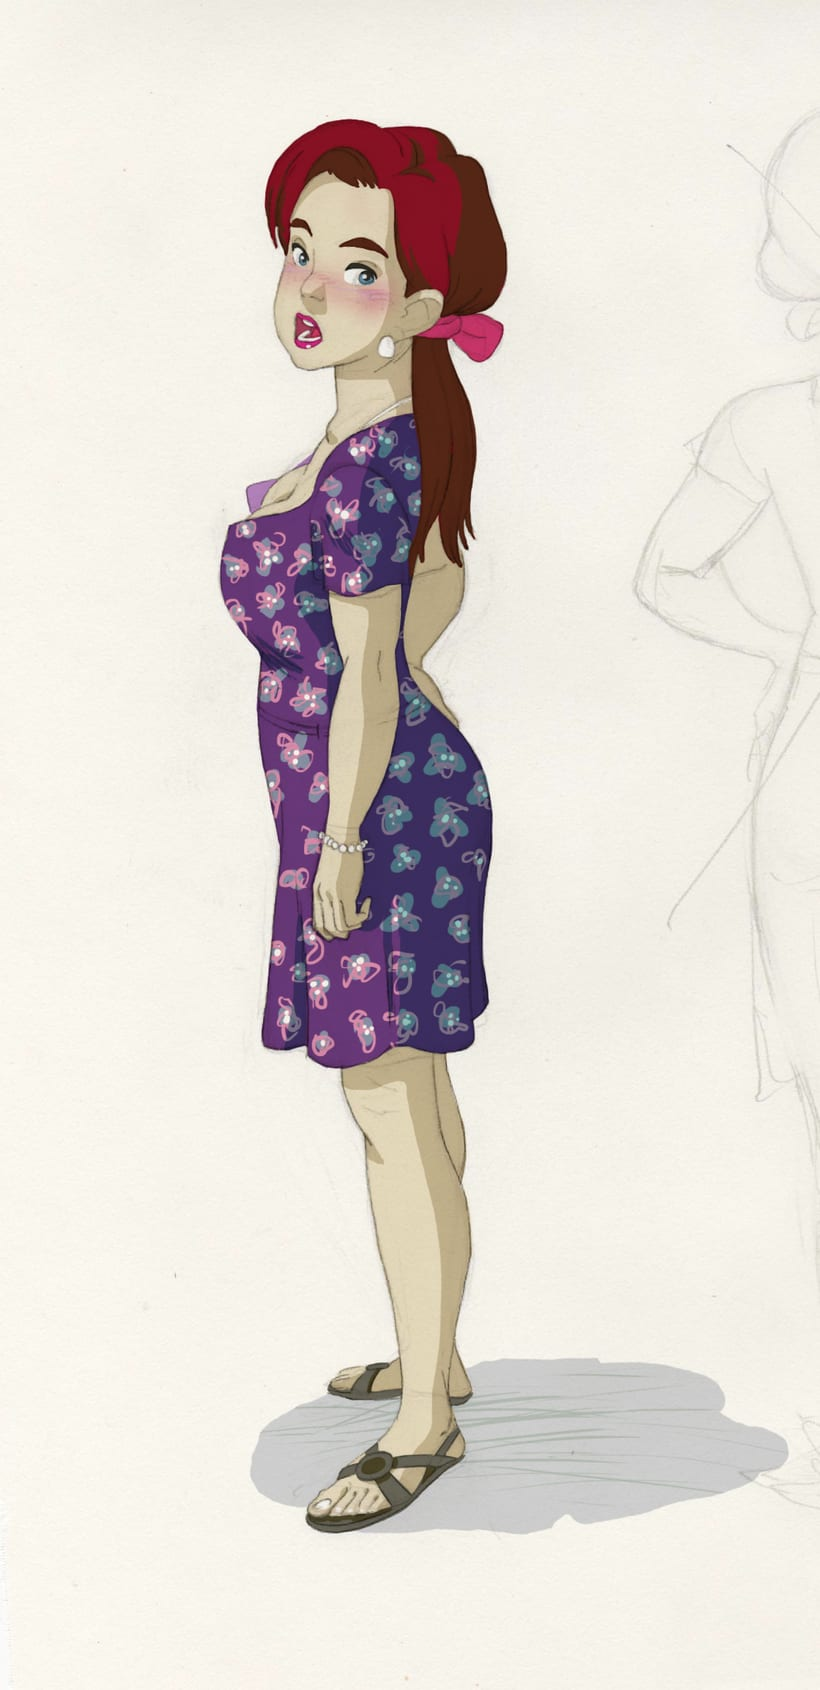 Character design (personal) 4